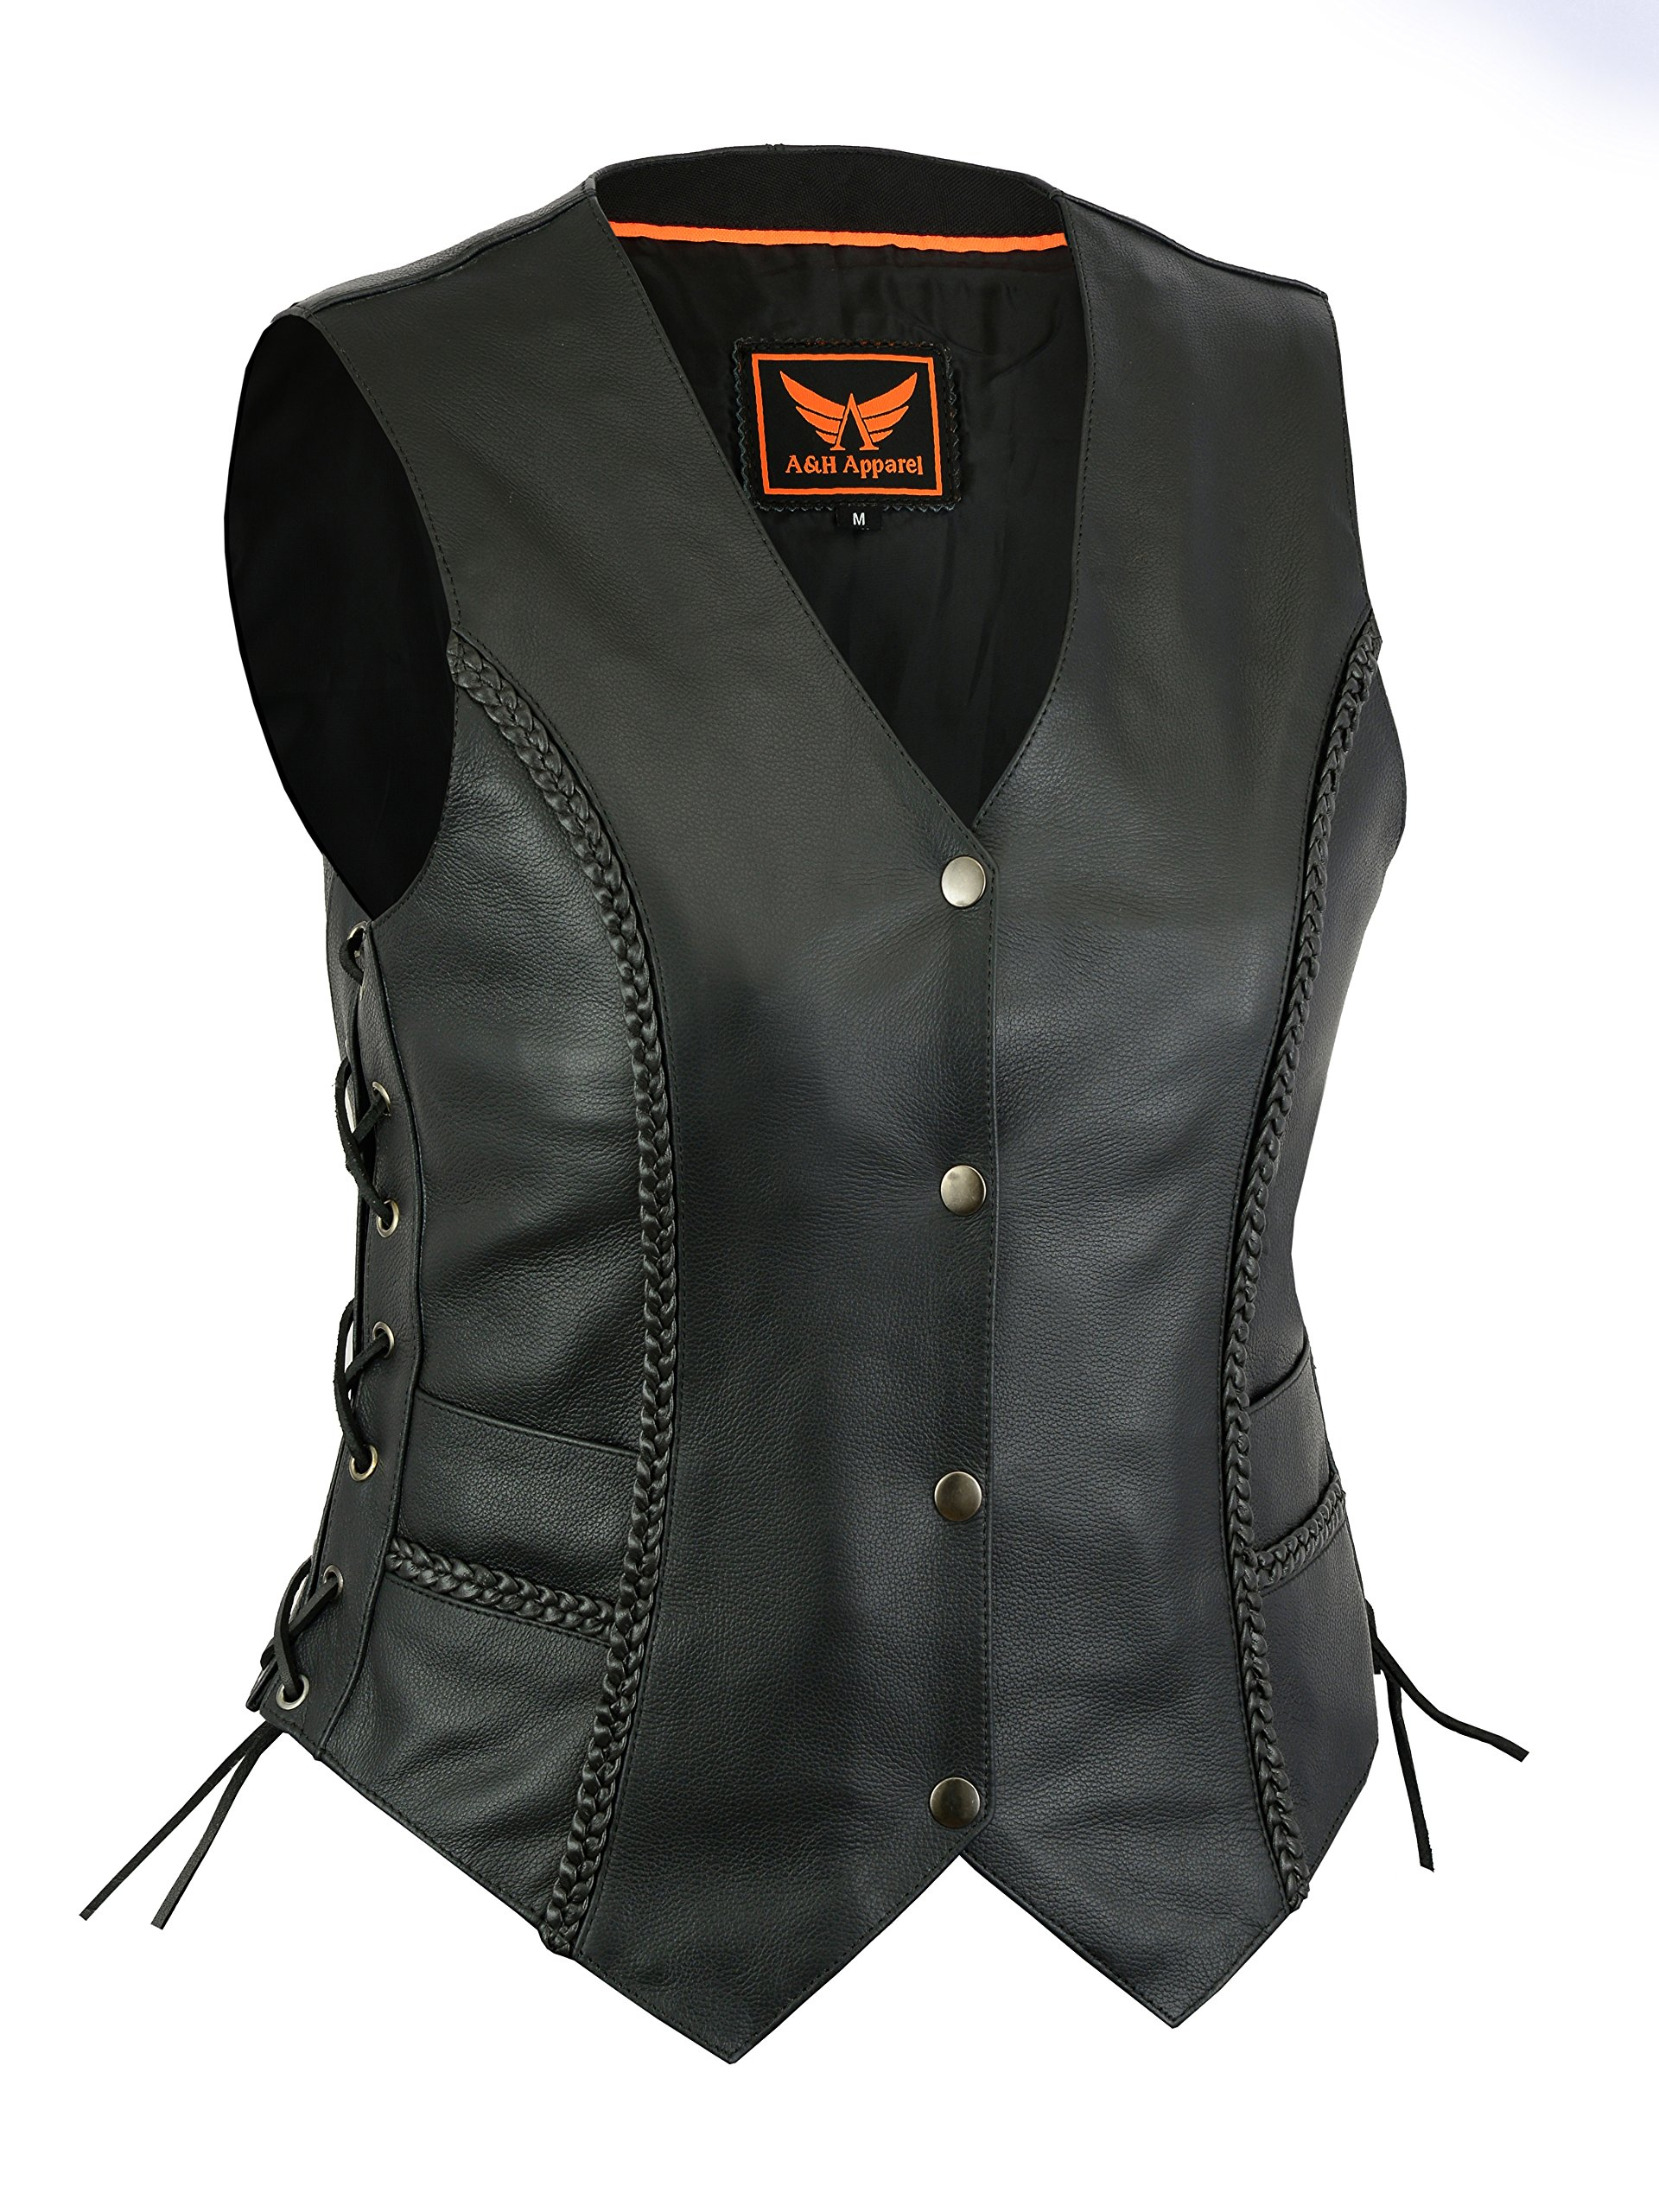 A&H Apparel Women Motorcycle Biker Classic Vest Genuine Cowhide Leather Vest With Gun Pocket (XXX-Large)